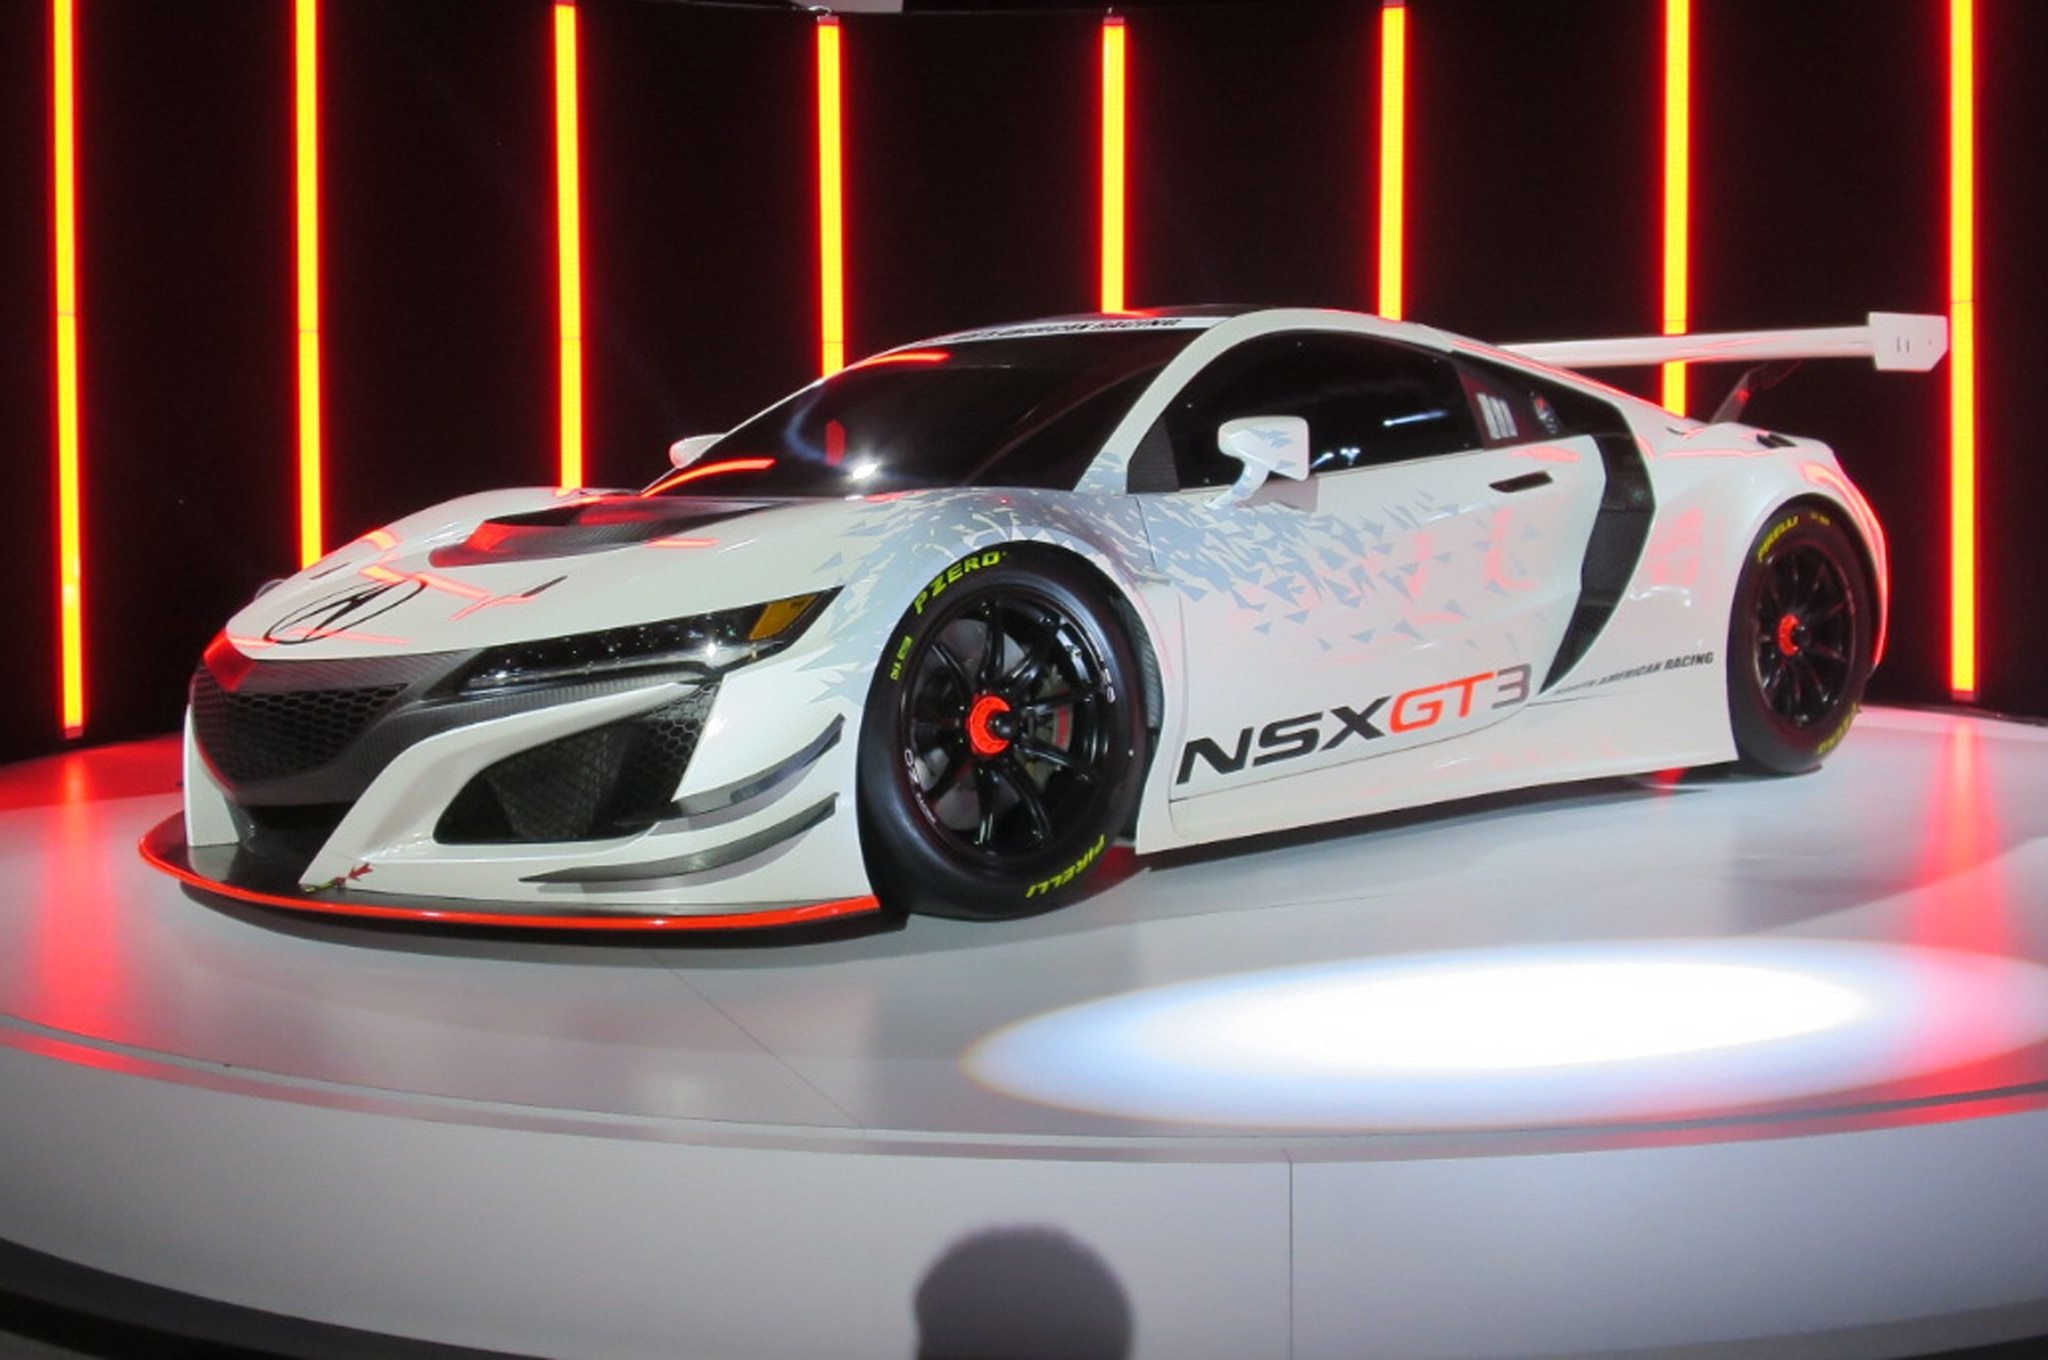 Latest Acura Nsx Gt3 Race Car Storms Into New York Auto Show Free Download